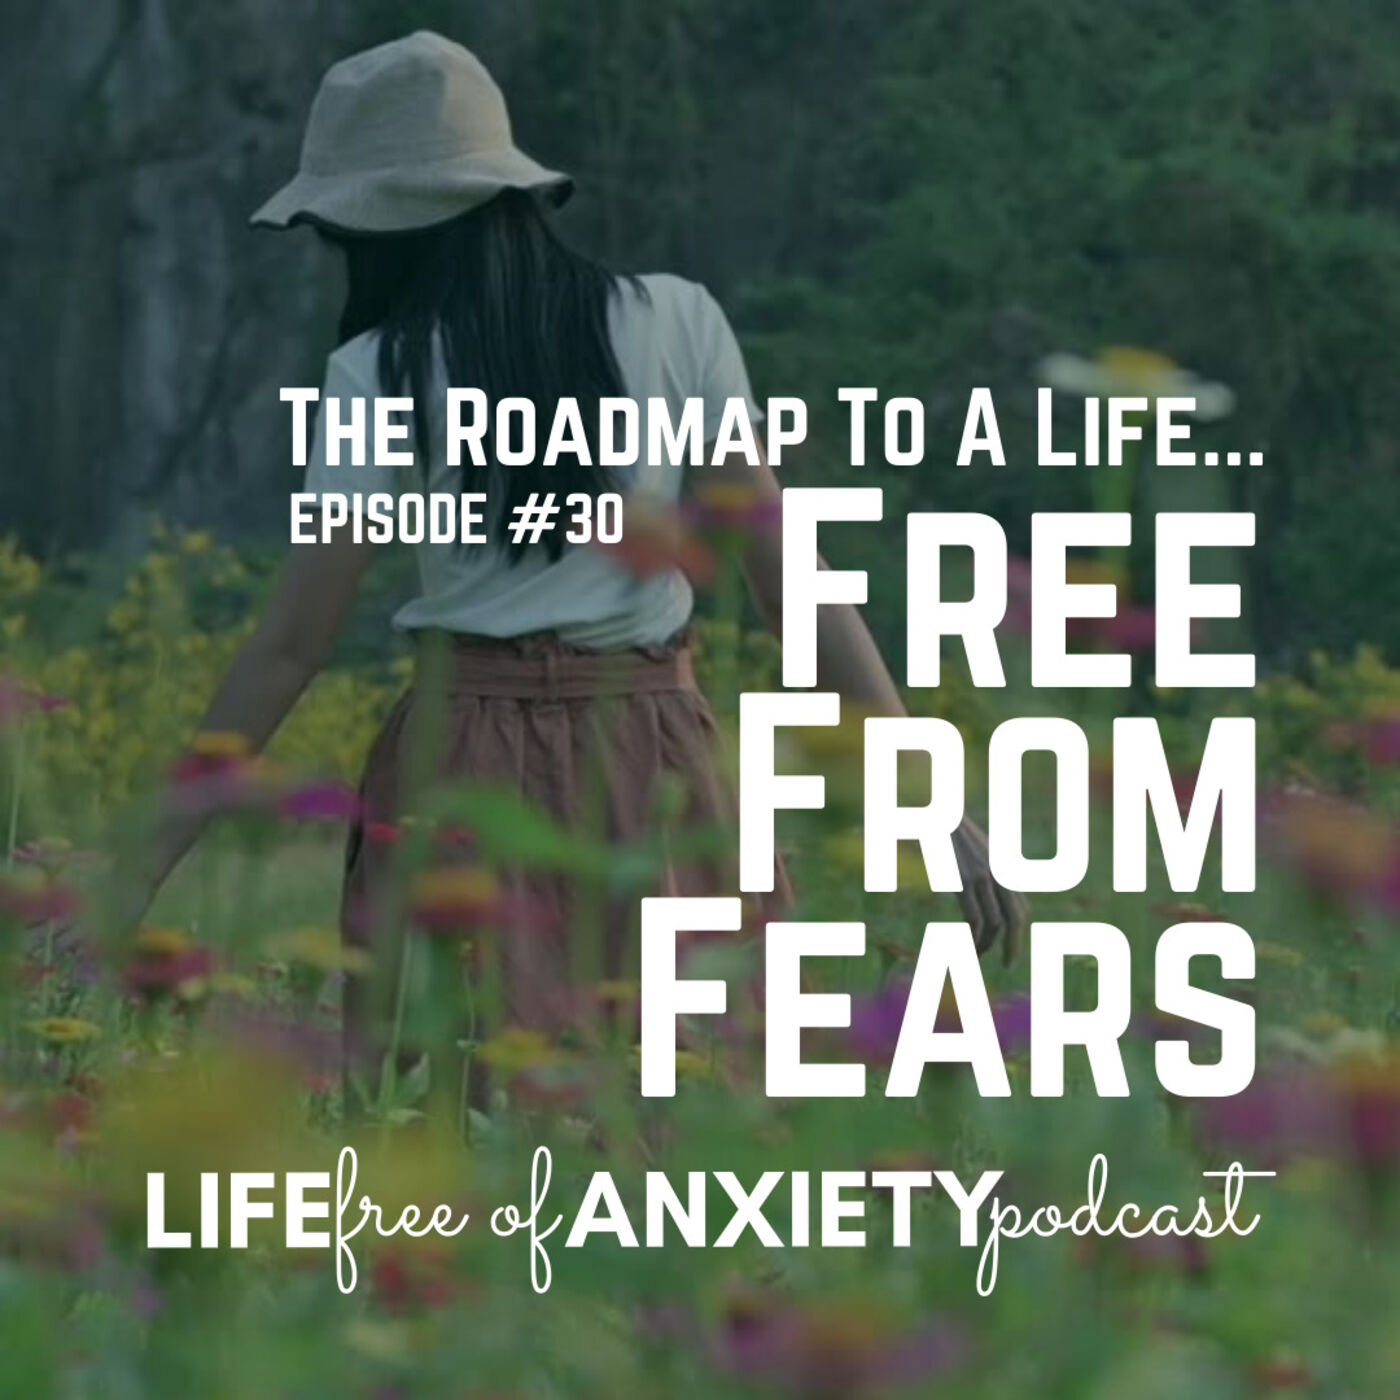 30-Your Roadmap to a Life Free From Fears (Book Excerpt)